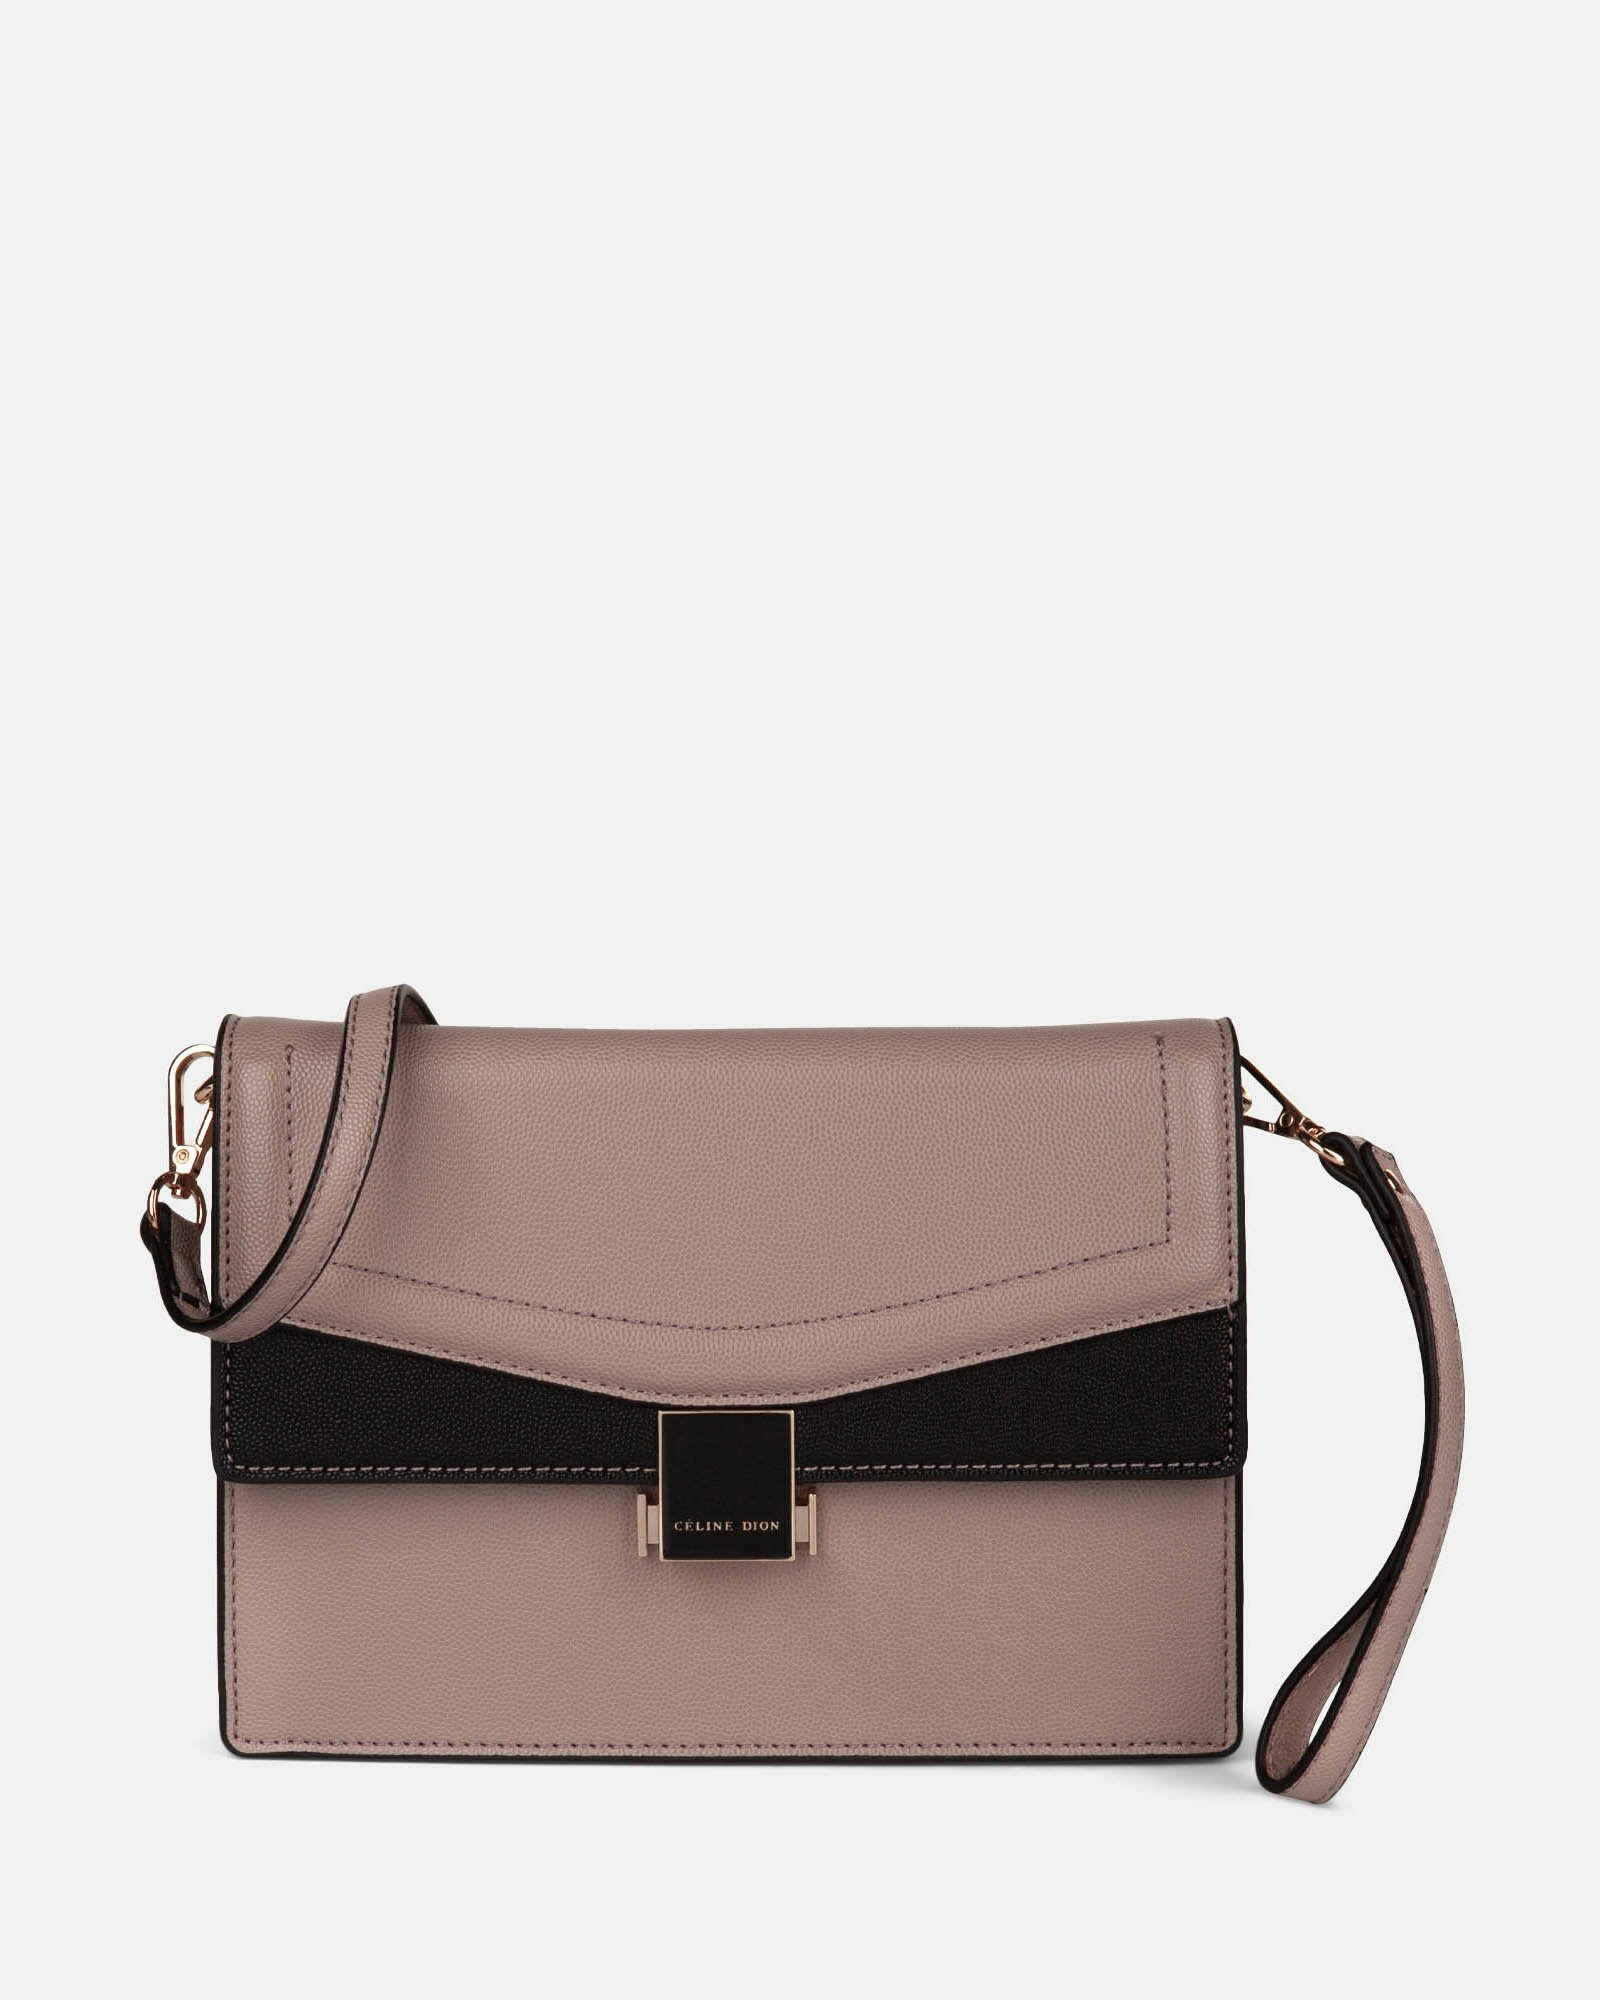 Scale - Clutch bag with Back easy access pocket - Nude - Céline Dion - Zoom